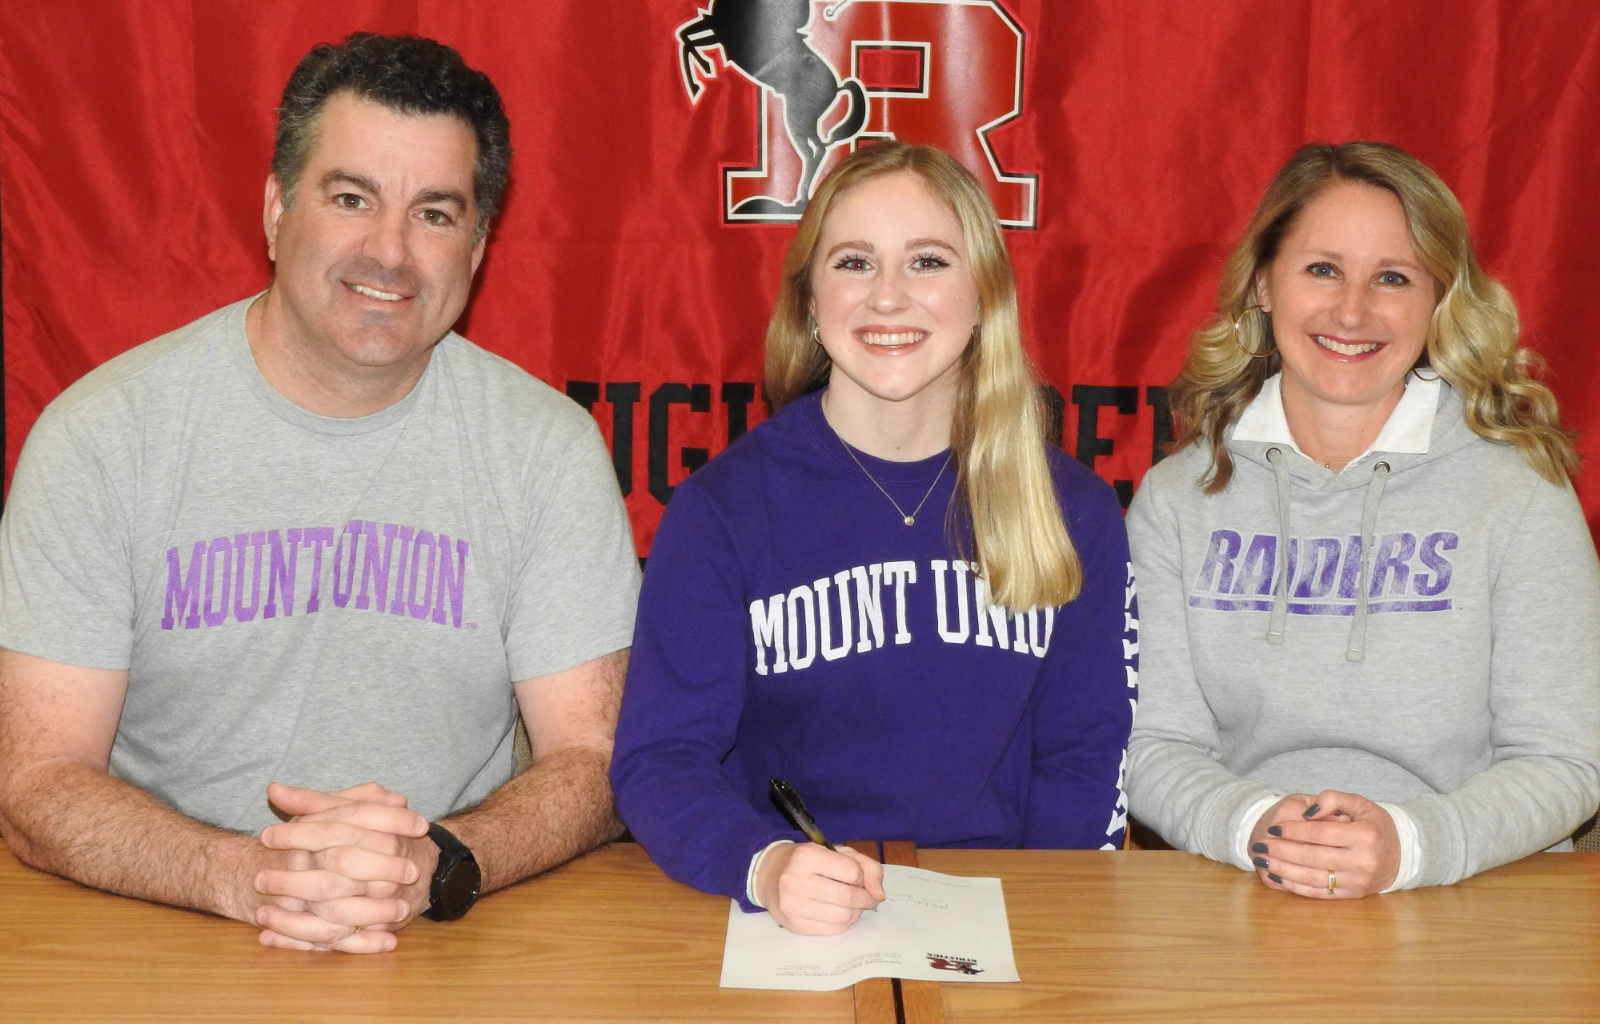 Courtney Kenworthy Commits to Mount Union